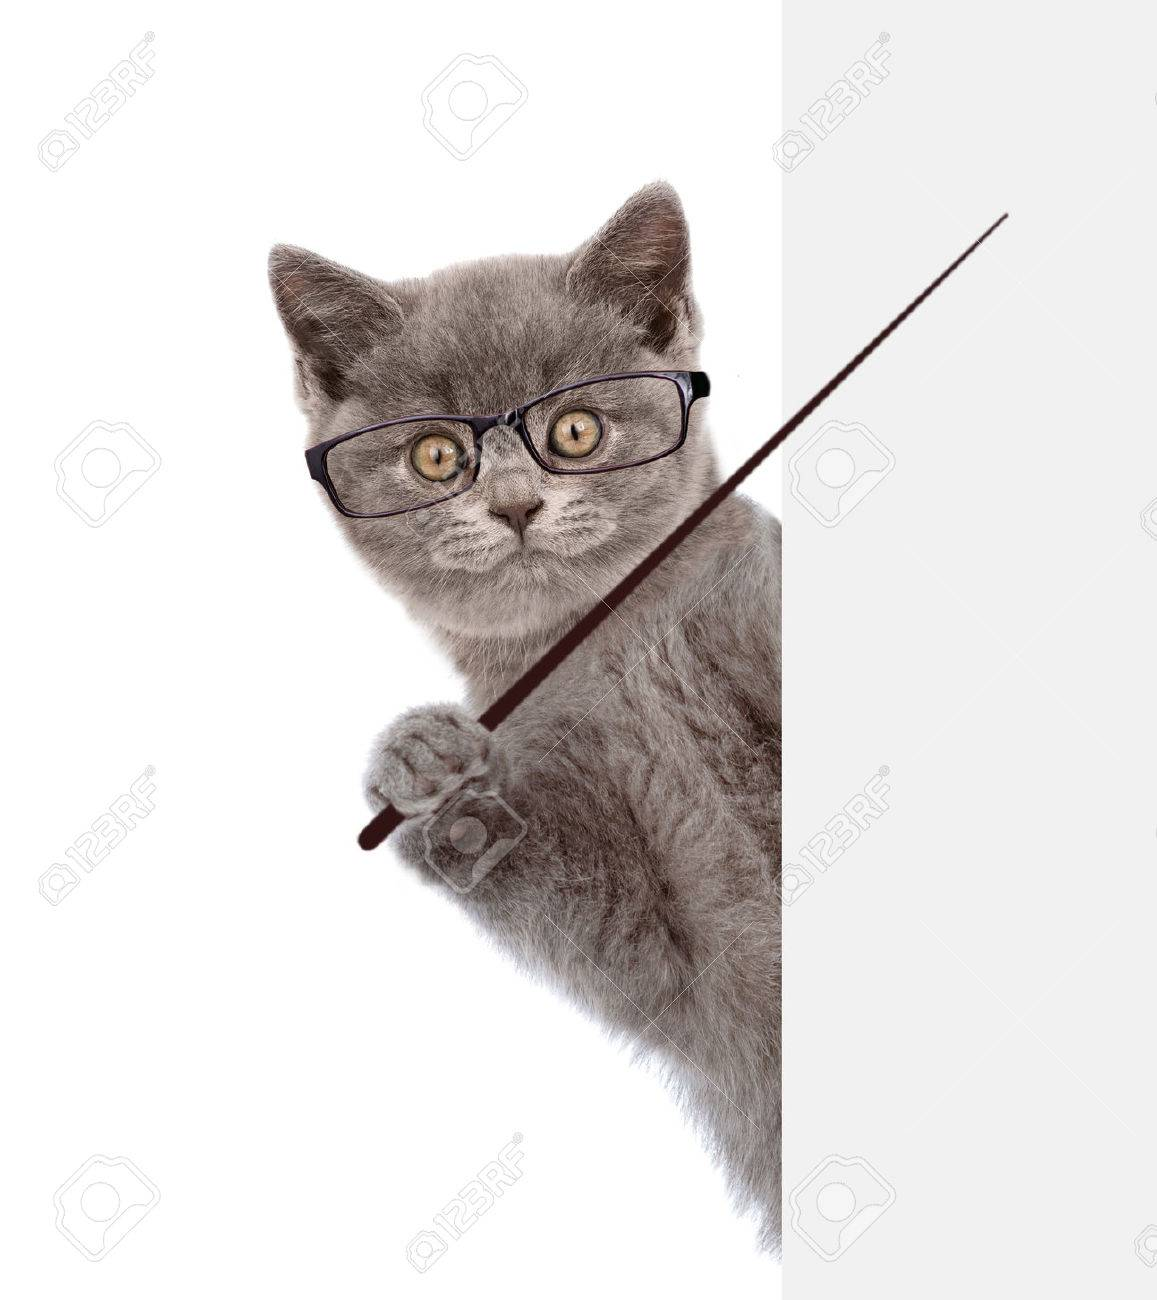 Cat wearing glasses holding a pointing stick and points on empty banner. isolated on white background. - 58749167